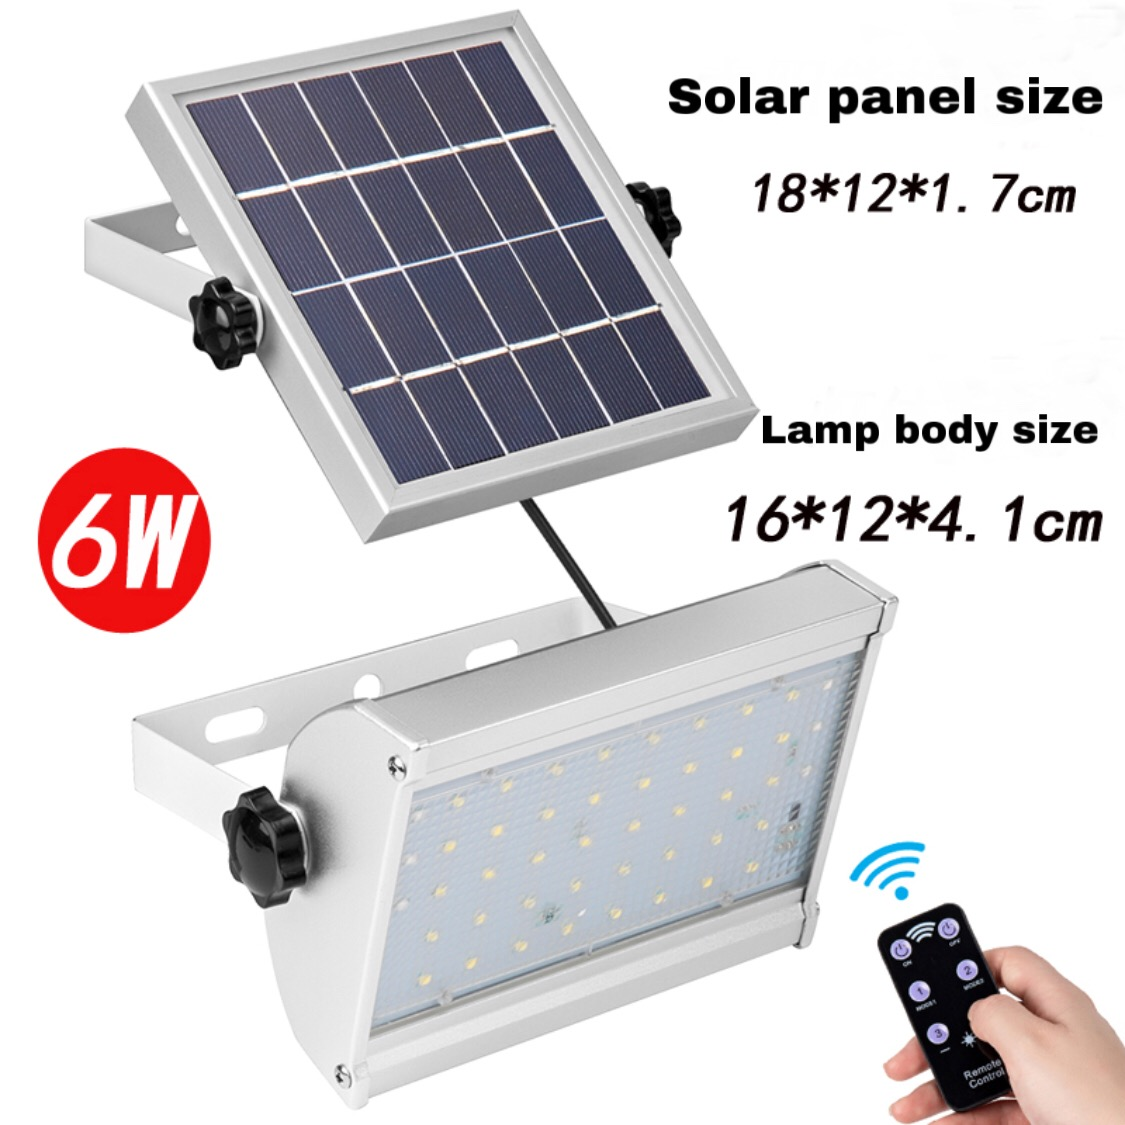 Pat Hei Gate Hardware China solar panel light kit looking for buyer for door-7